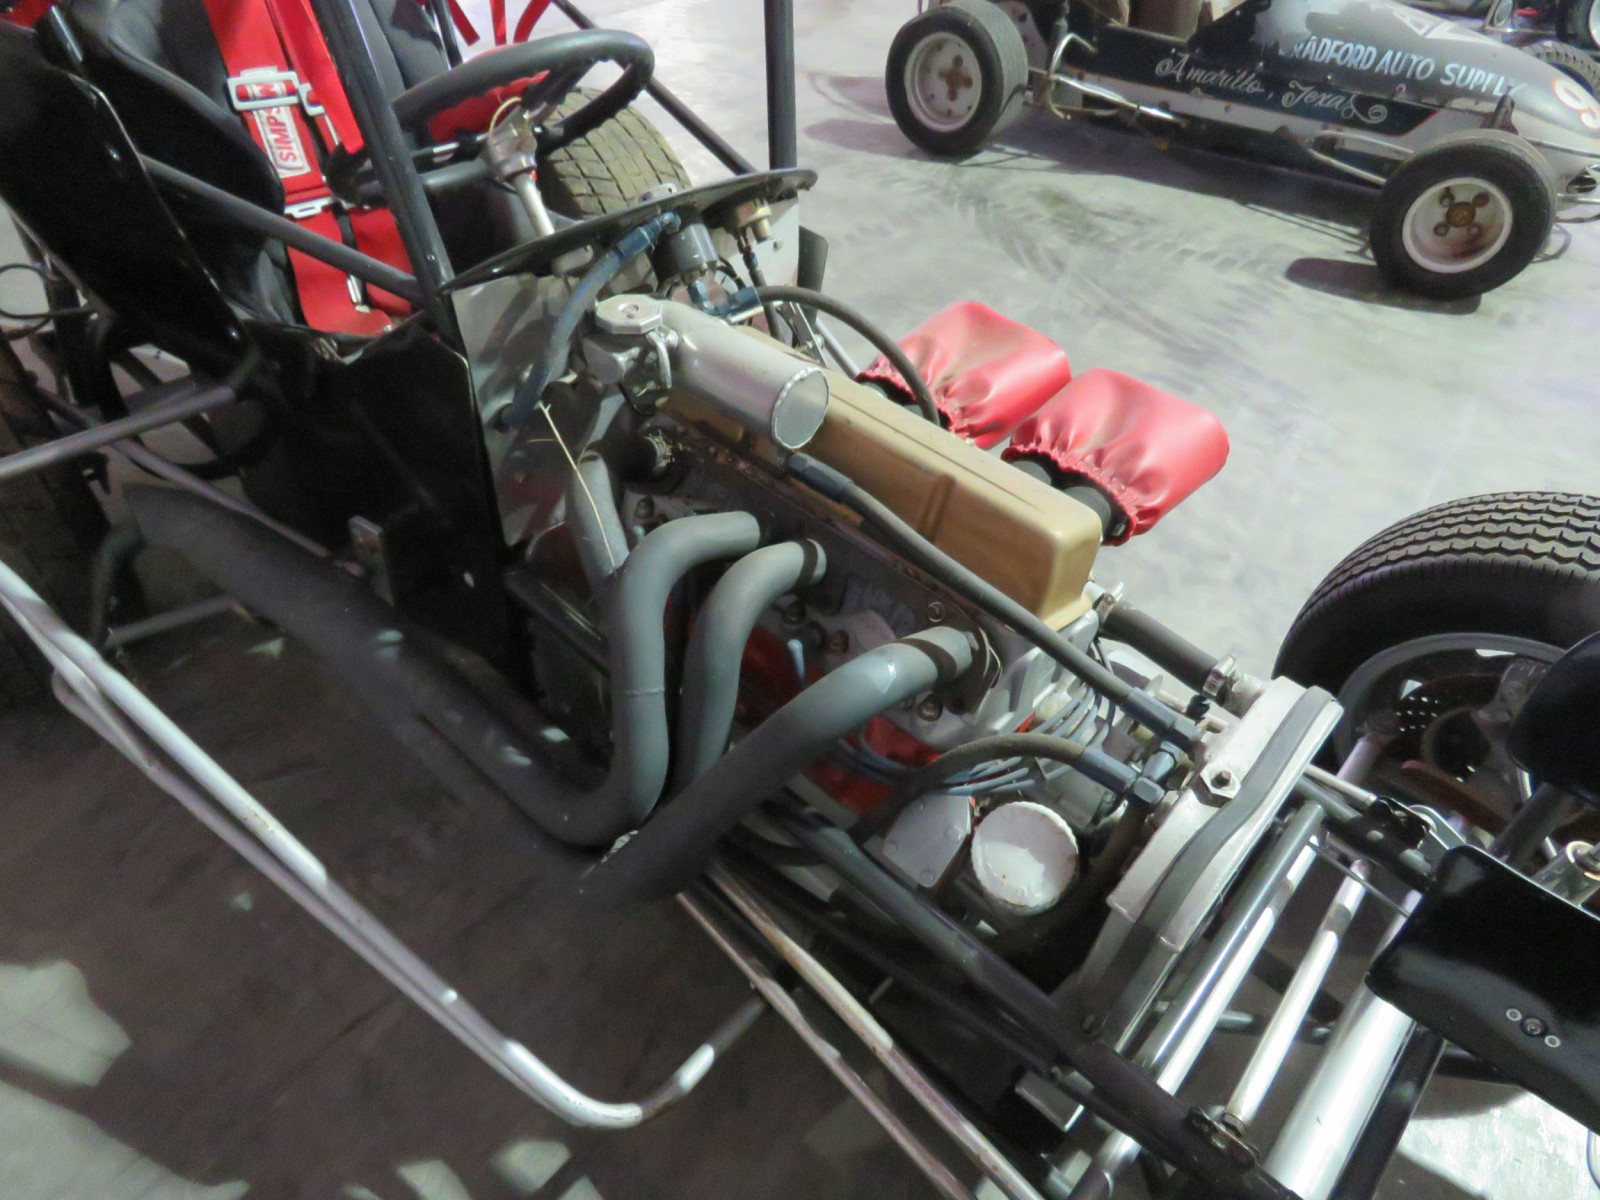 1970 Edmunds Sesco Midget Race Cart - Image 10